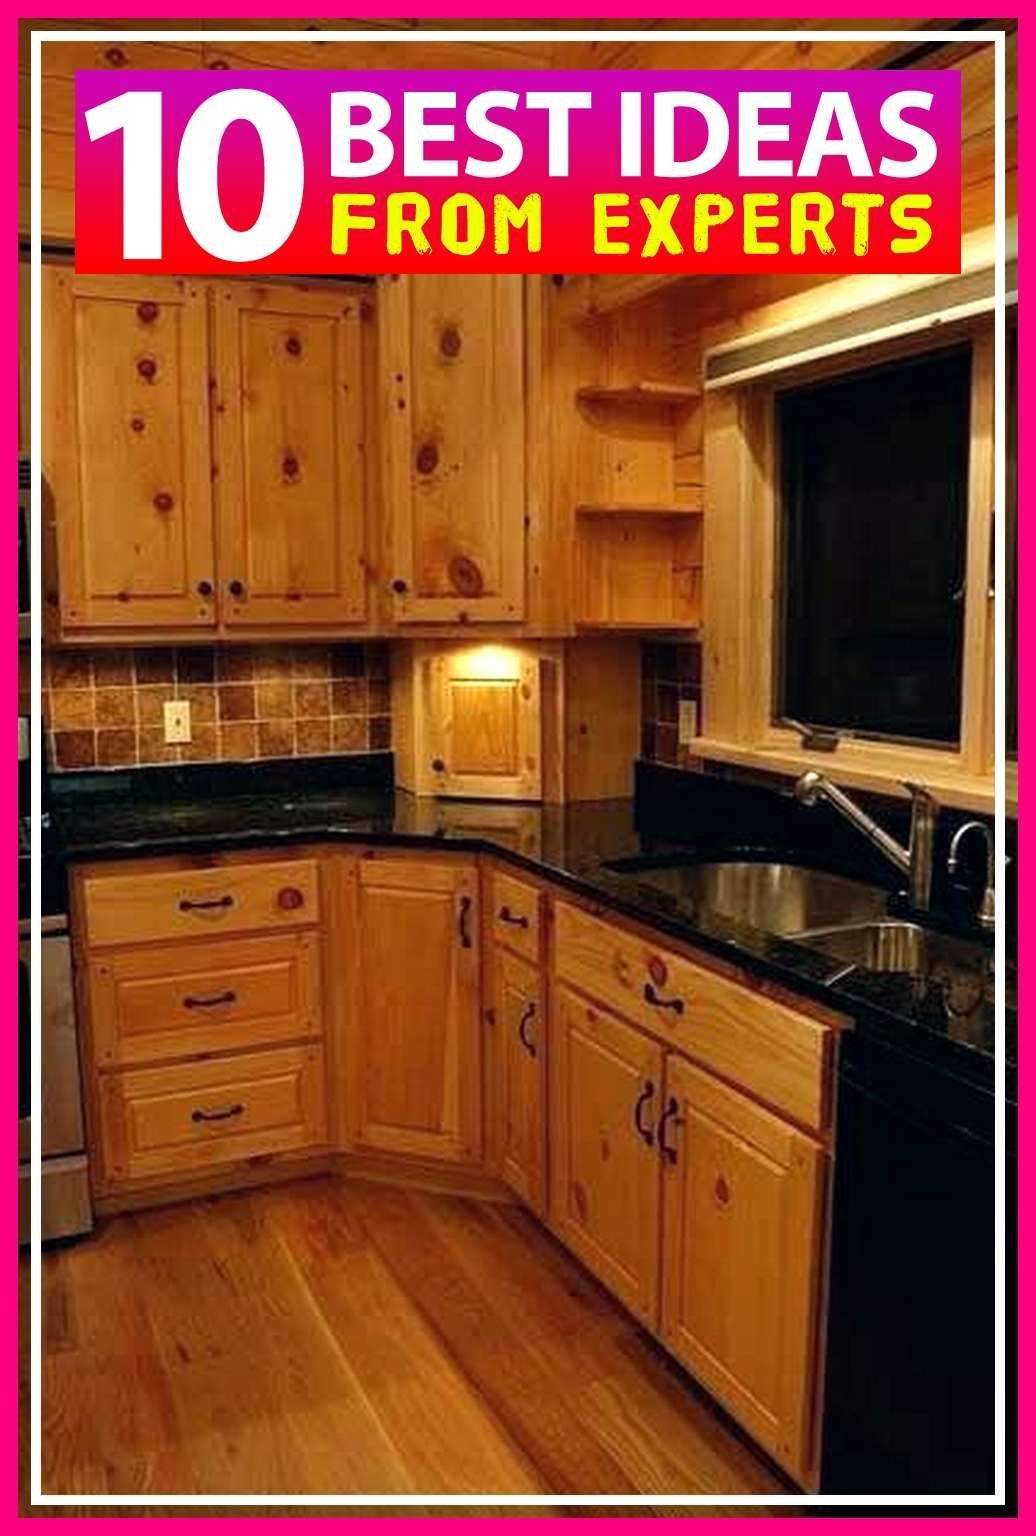 Hand Crafted Solid Pine Wood Cabinets For Kitchen Applications. All Cabinets  Are Very Solid And Long Lasting Products That Are Able To Accommodate  Plenty Of ...